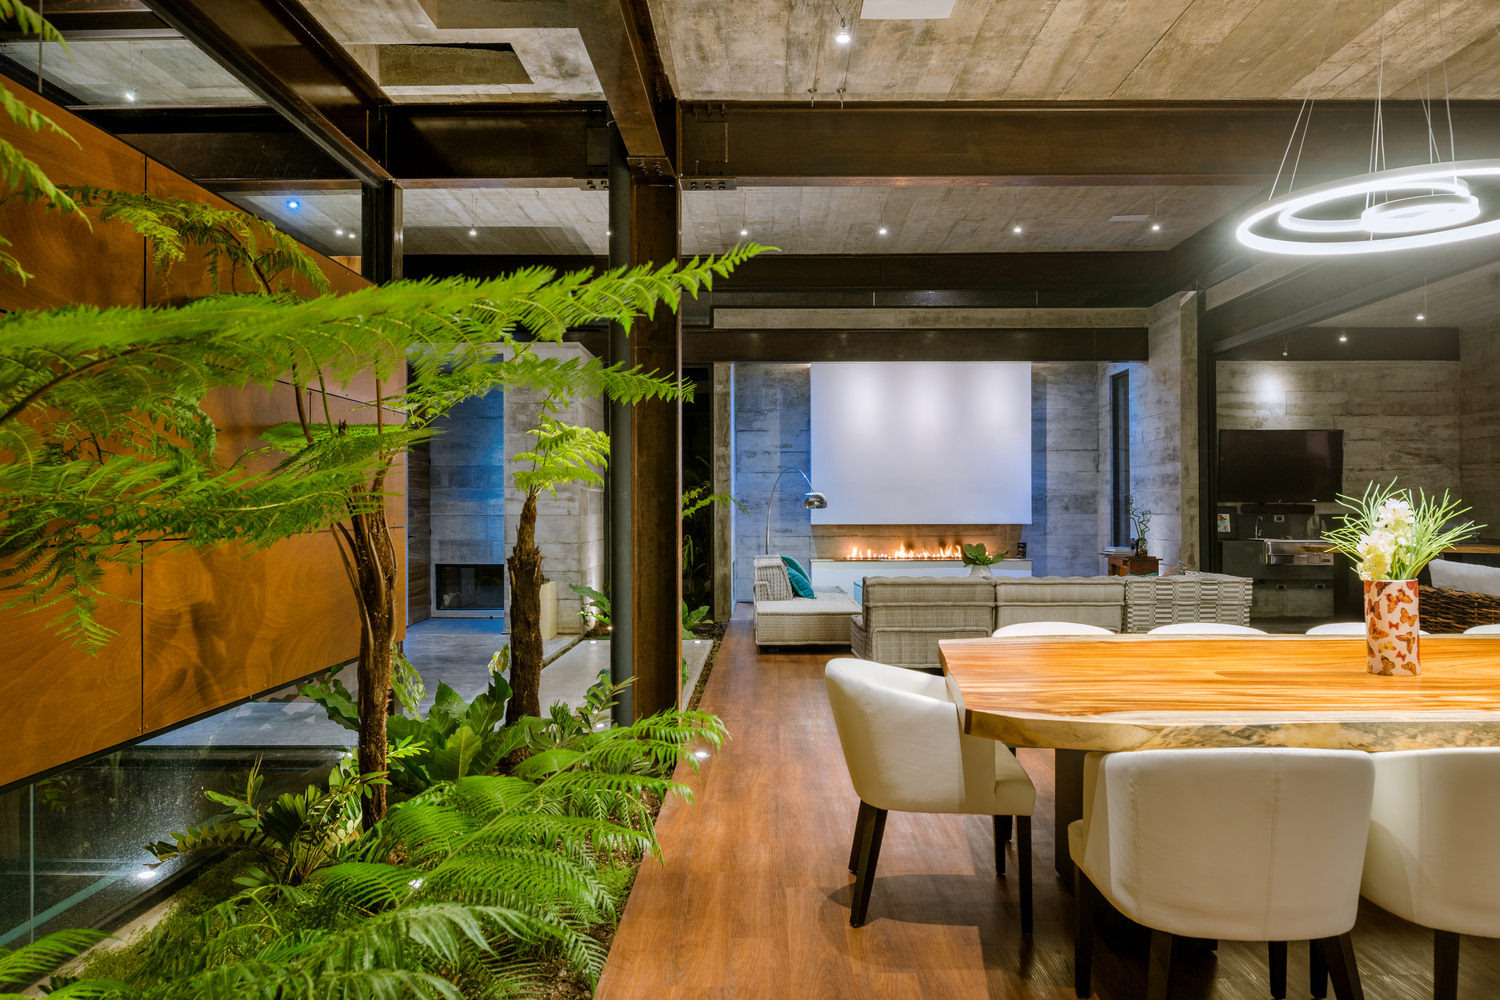 The beautiful lush garden also manages to actively become a part of the interior design